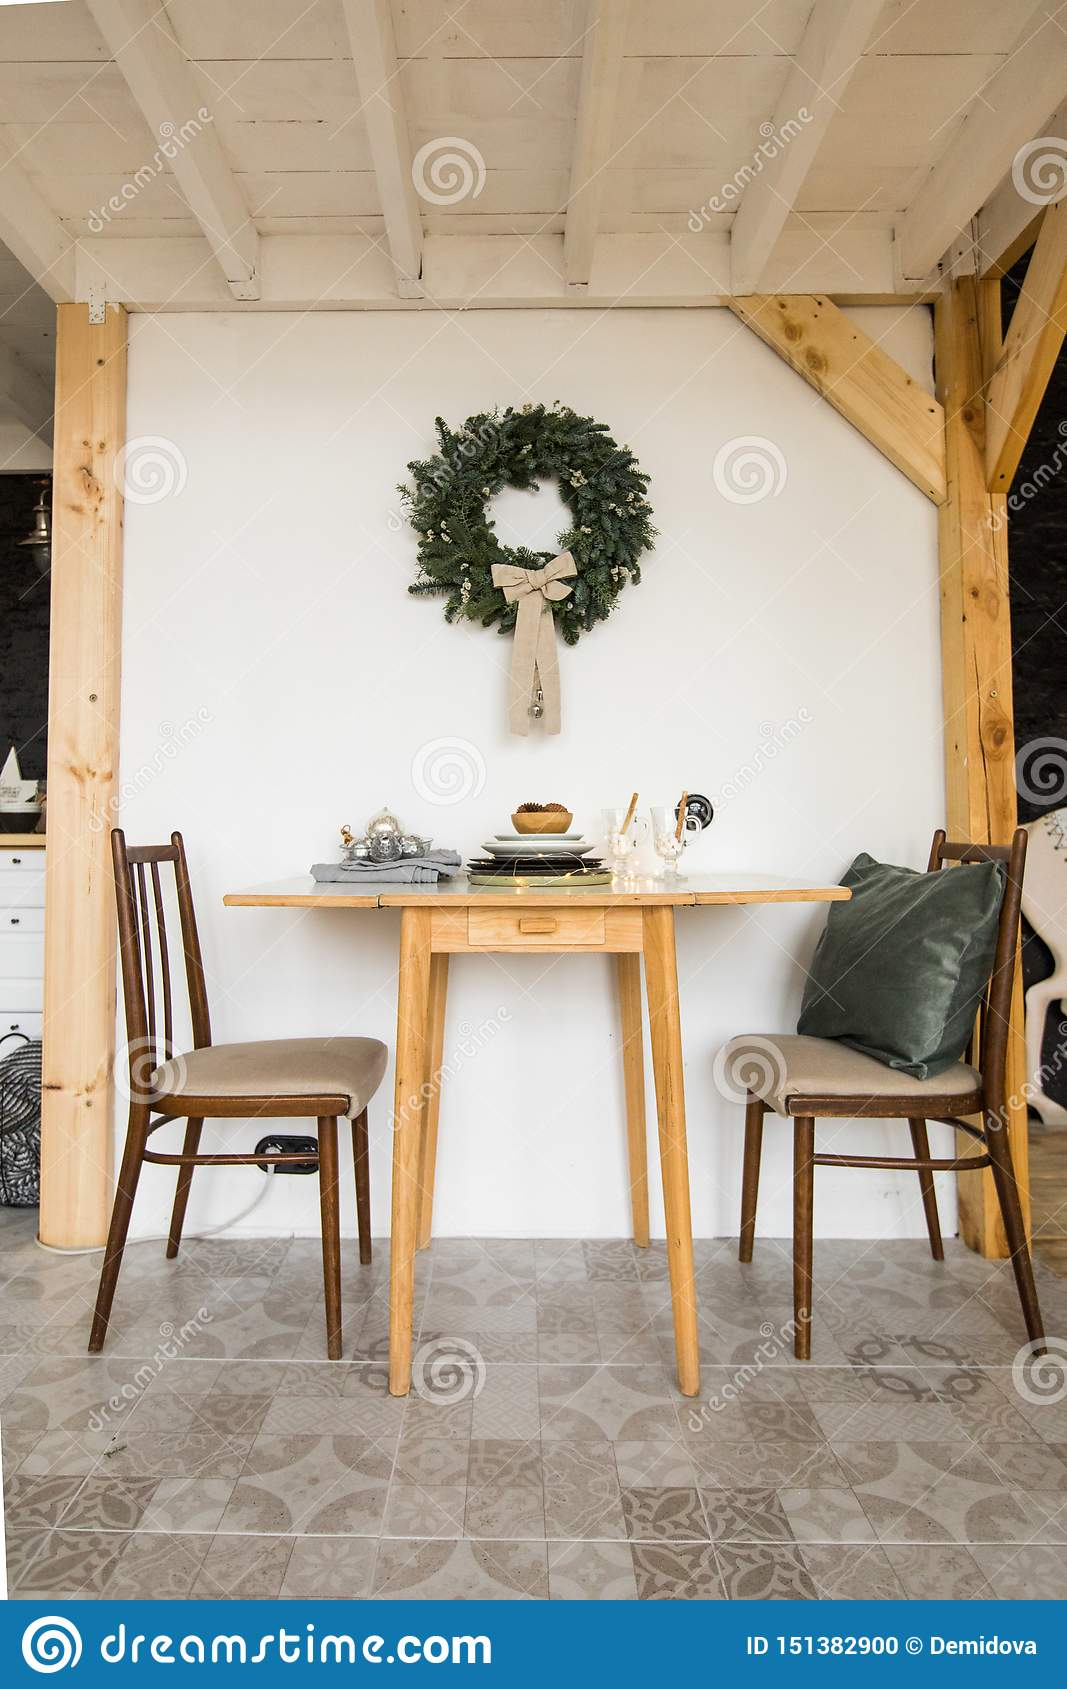 Festive simple table and chairs in living room